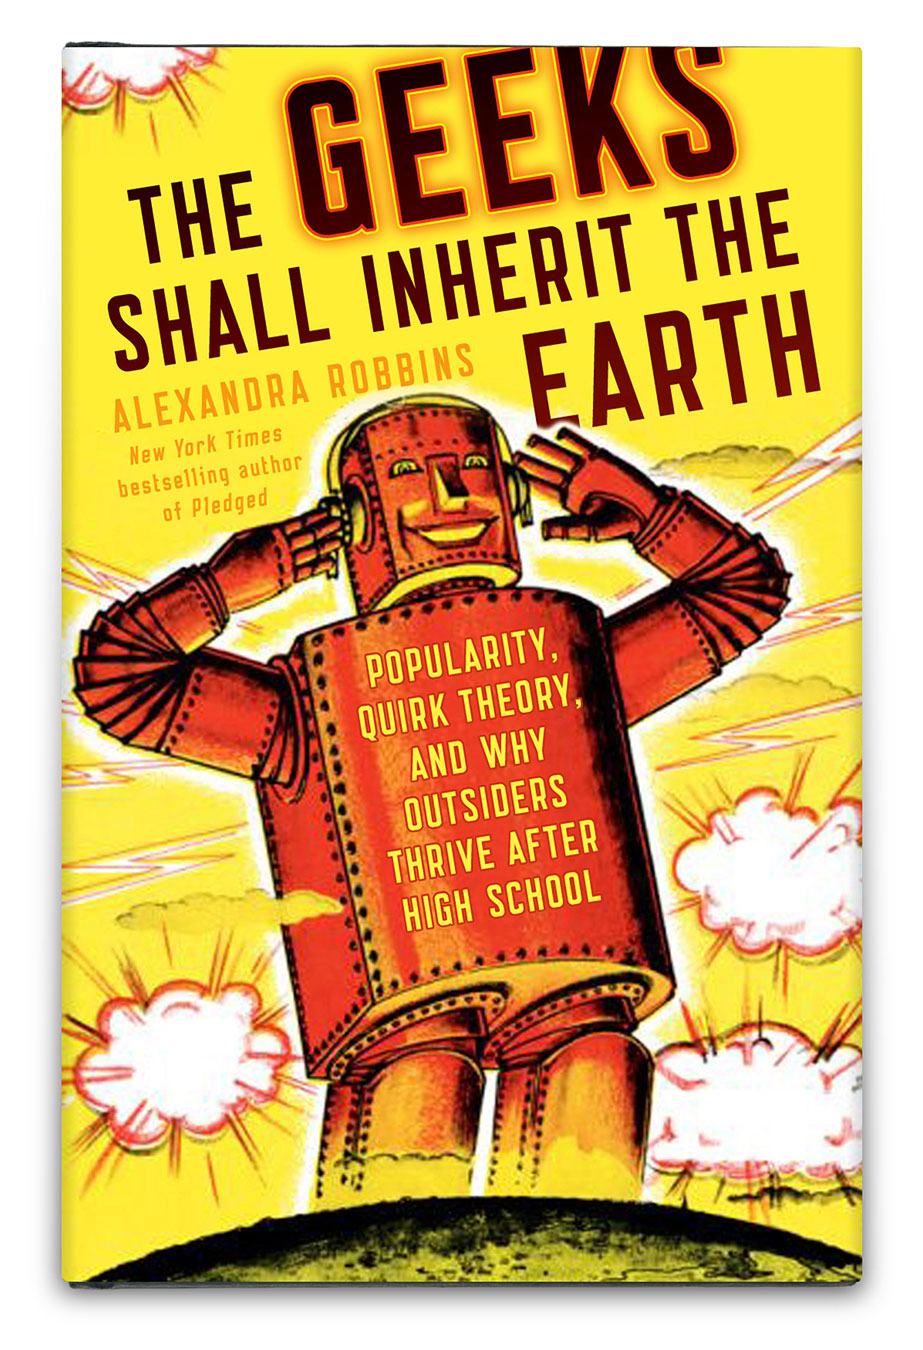 THE GEEKS SHALL INHERIT THE EARTH (comp)